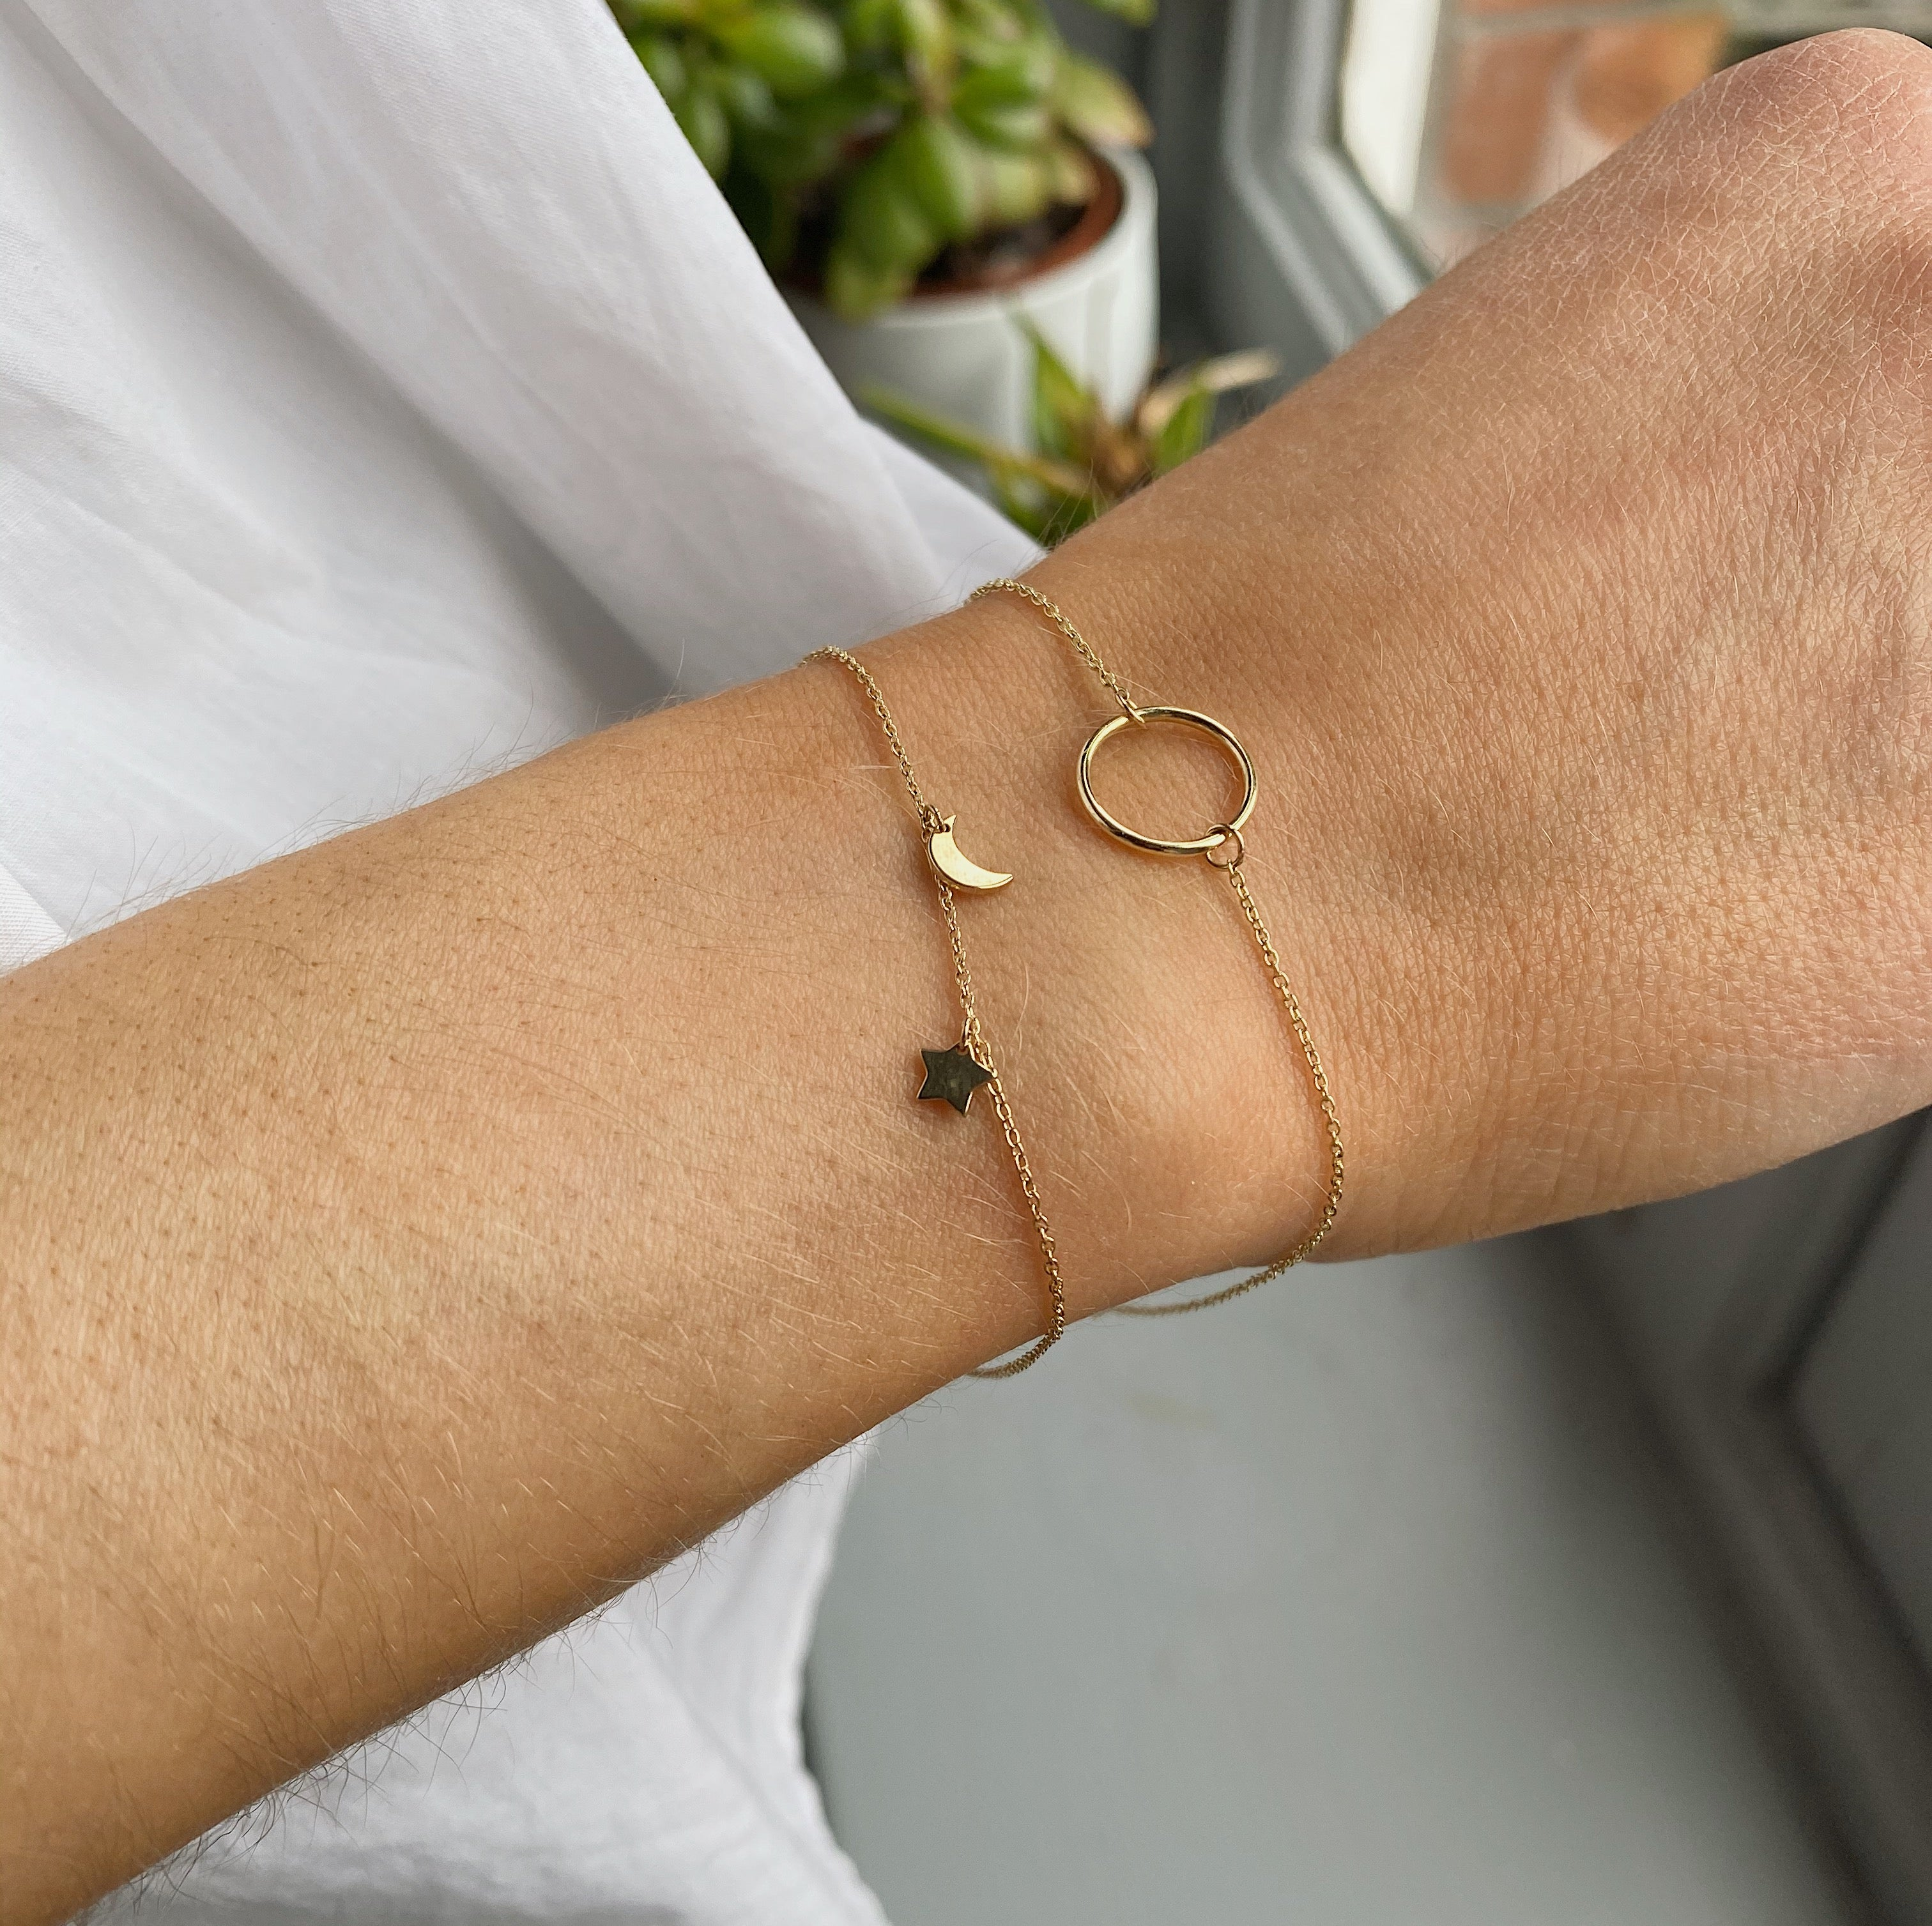 9kt Gold Floating Circle Bracelet